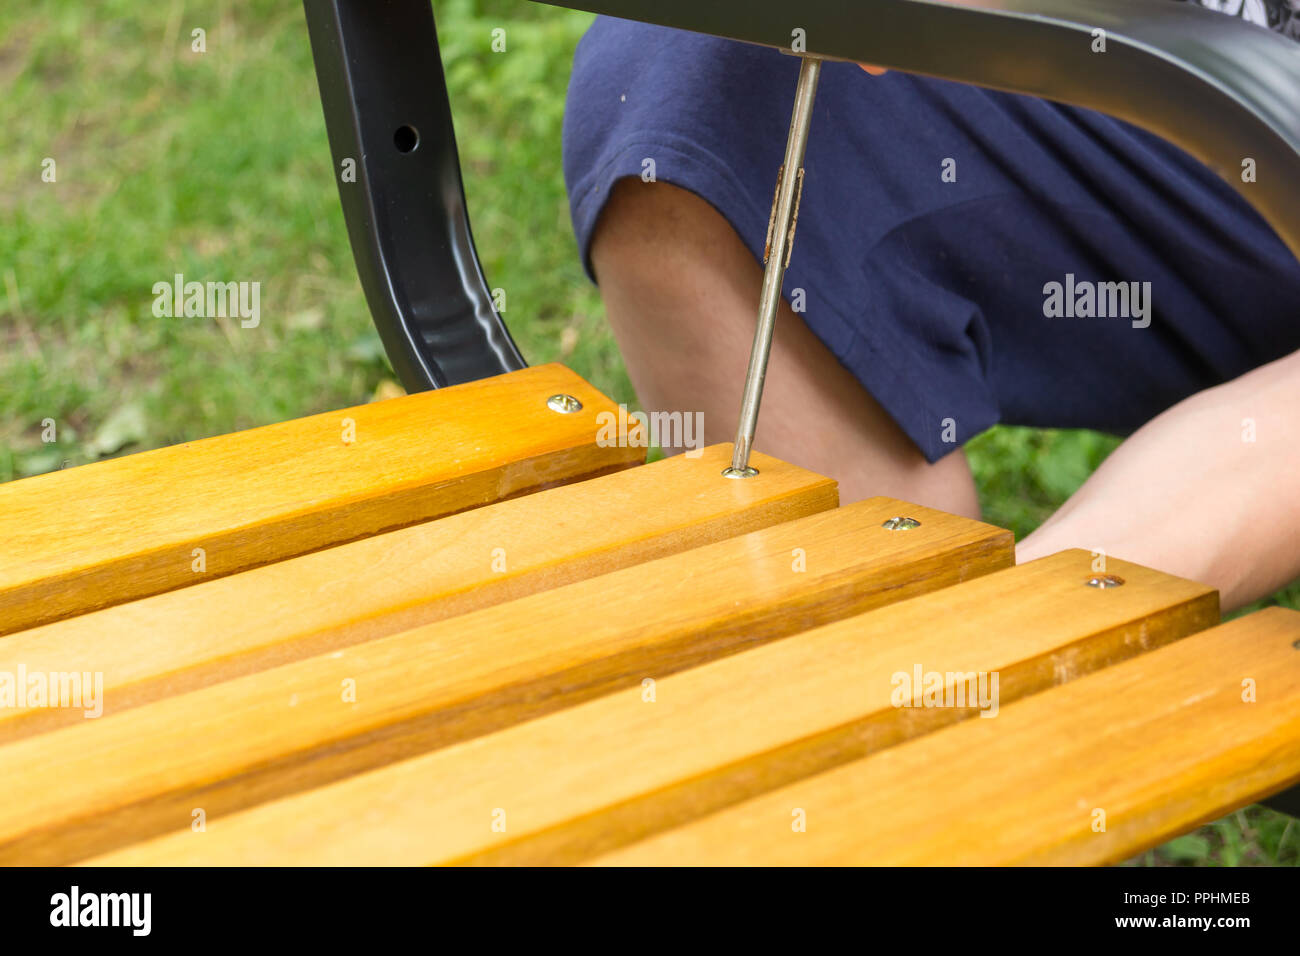 A man screwing a screw into the bench - Stock Image